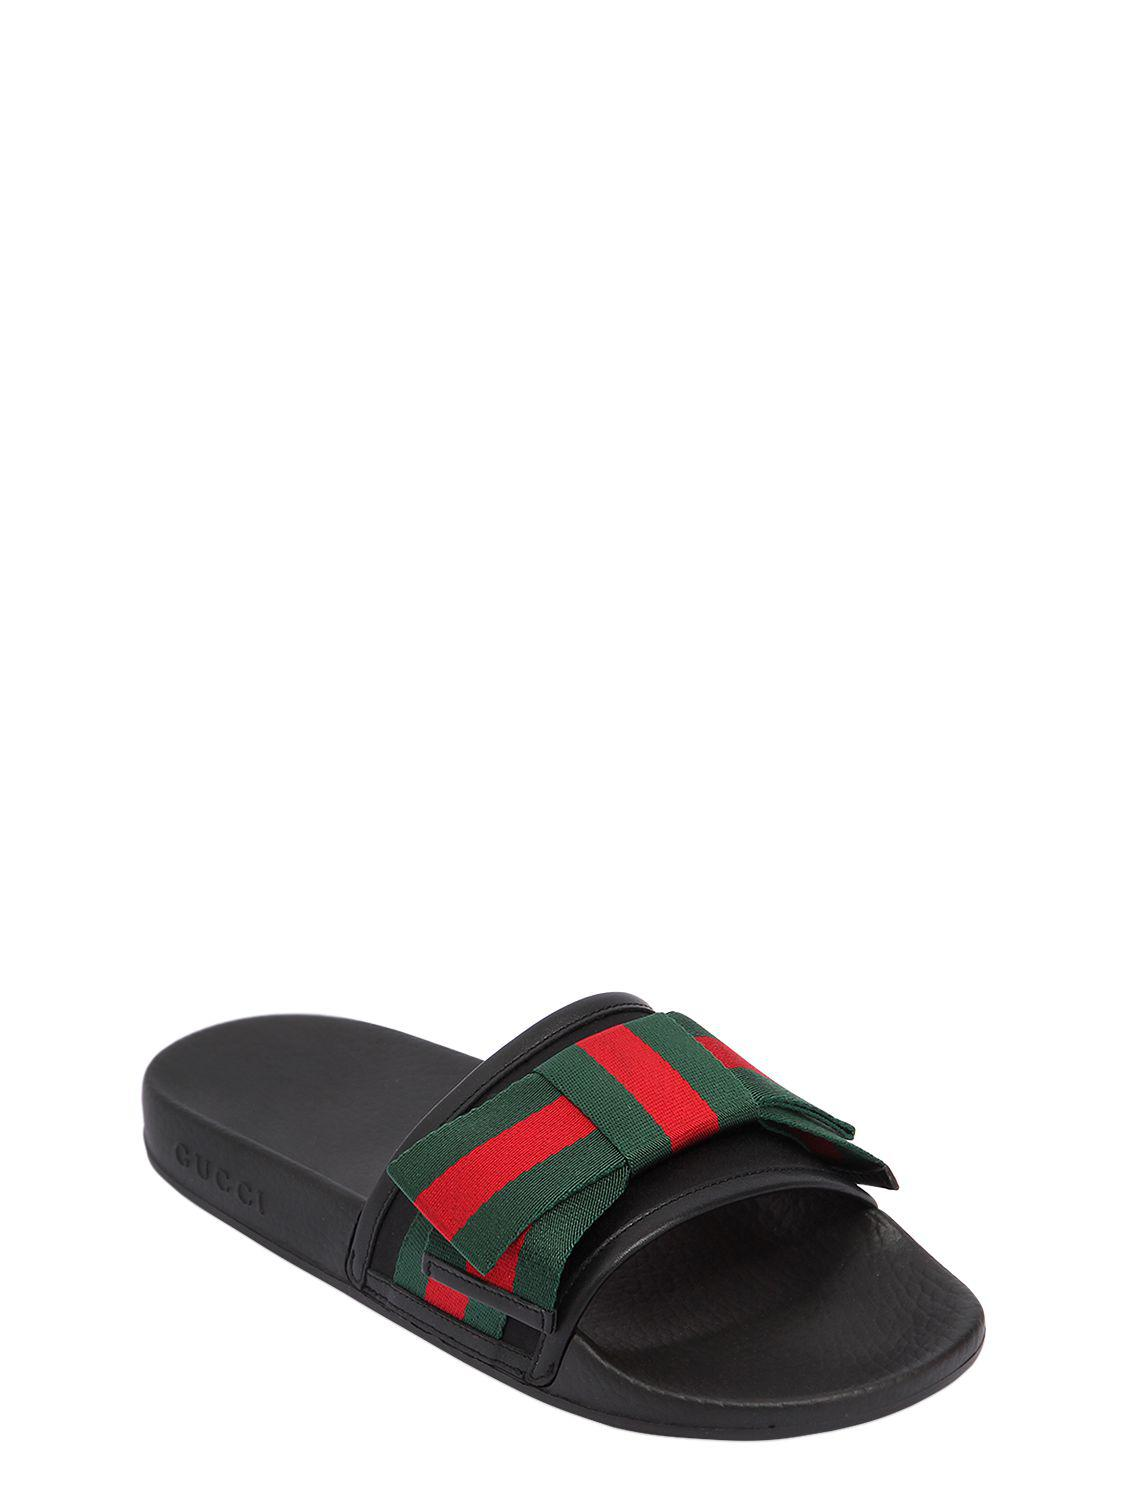 e724cdd6fee Gucci 10mm Pursuit Web Bow Satin Slide Flats in Black for Men - Lyst